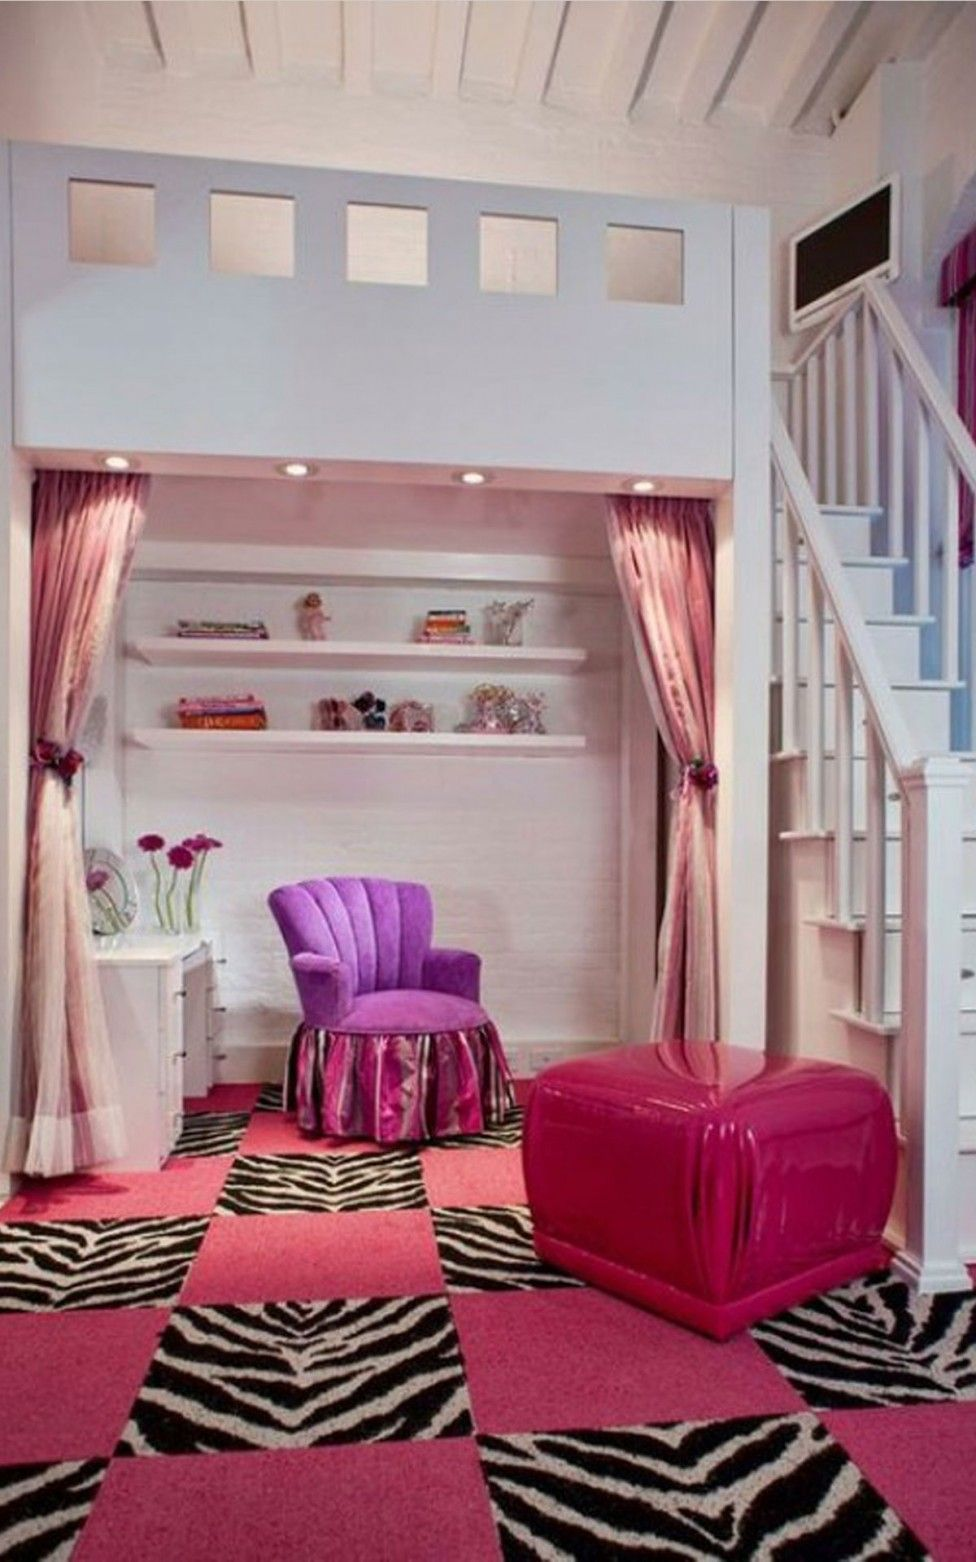 Small room ideas for girls with cute color bedroom 22 Bedroom ideas for small rooms teenage girls